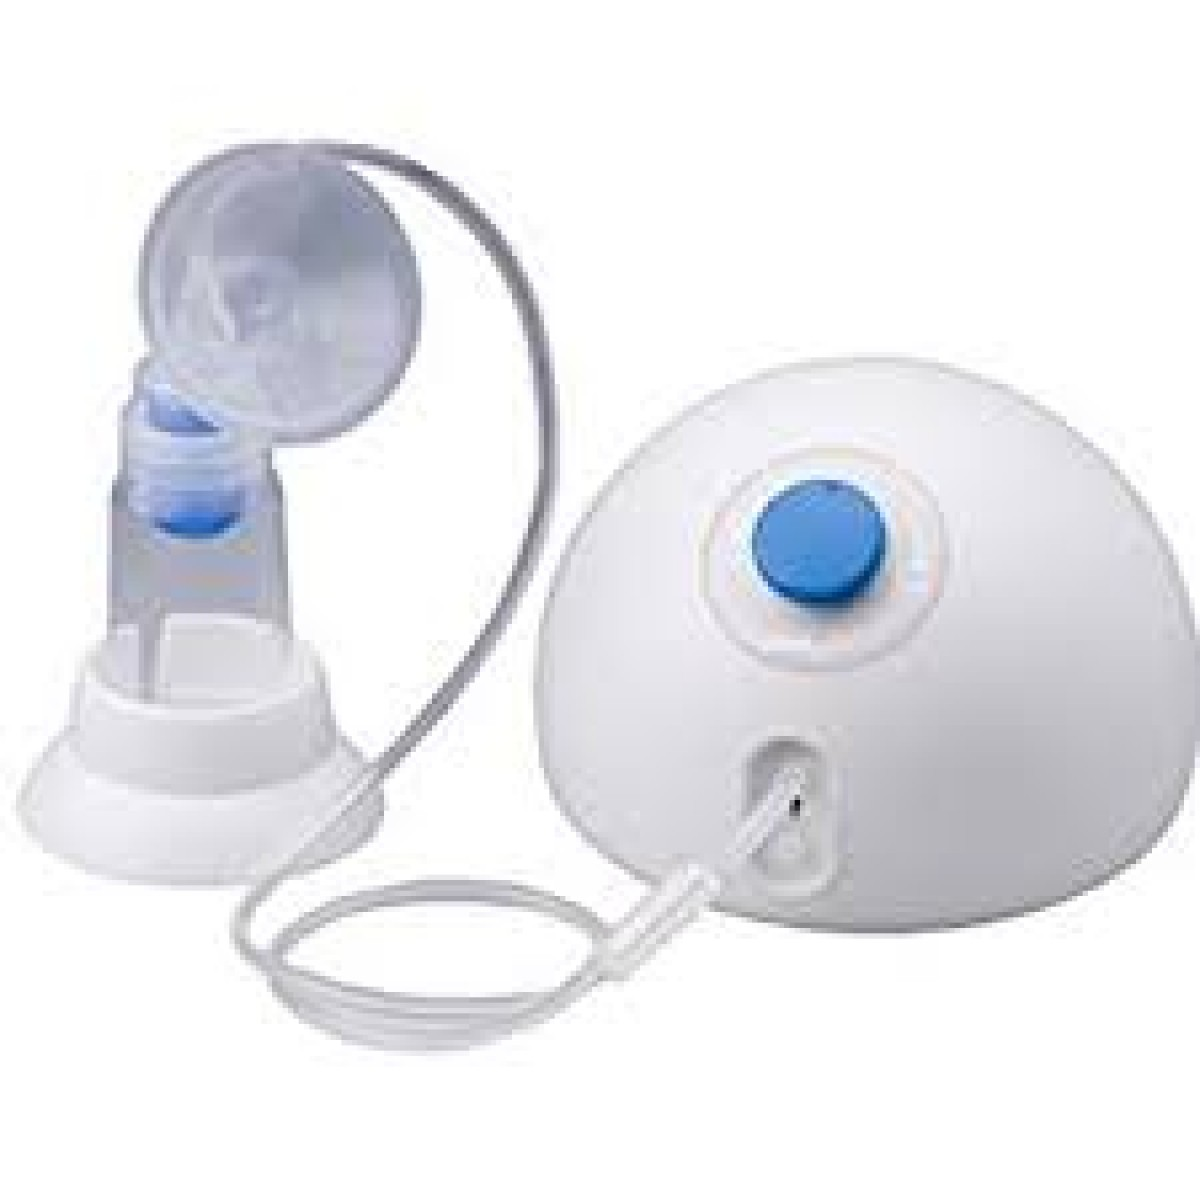 SPECTRA DEW 300 BREAST PUMP (WITH 1 BREAST SHIELD SET) - Kico Baby Center